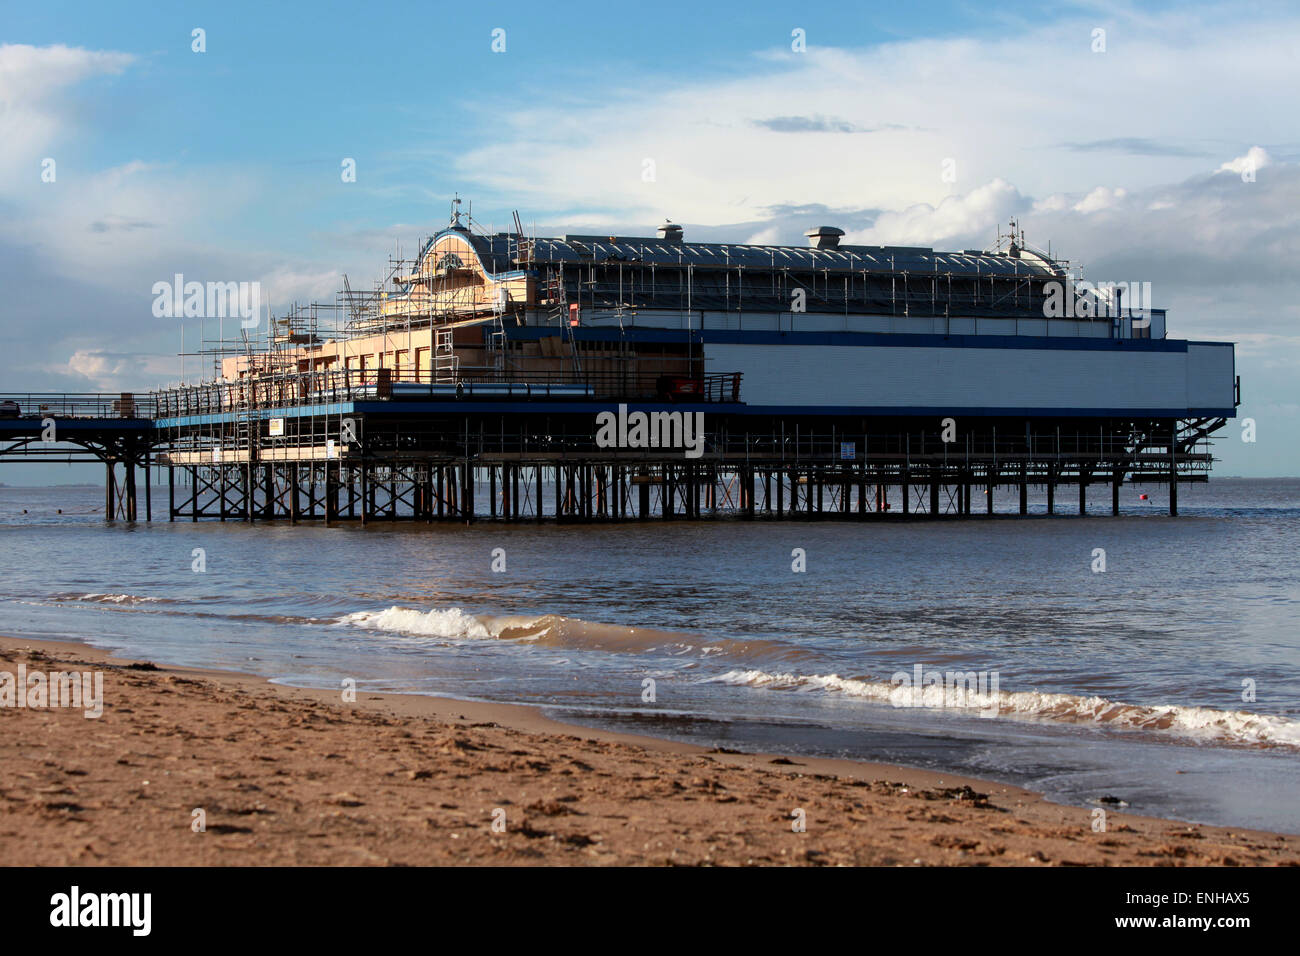 Cleethorpes Pier at Cleethorpes beach near Grimsby undergoing a refurbishment - Stock Image